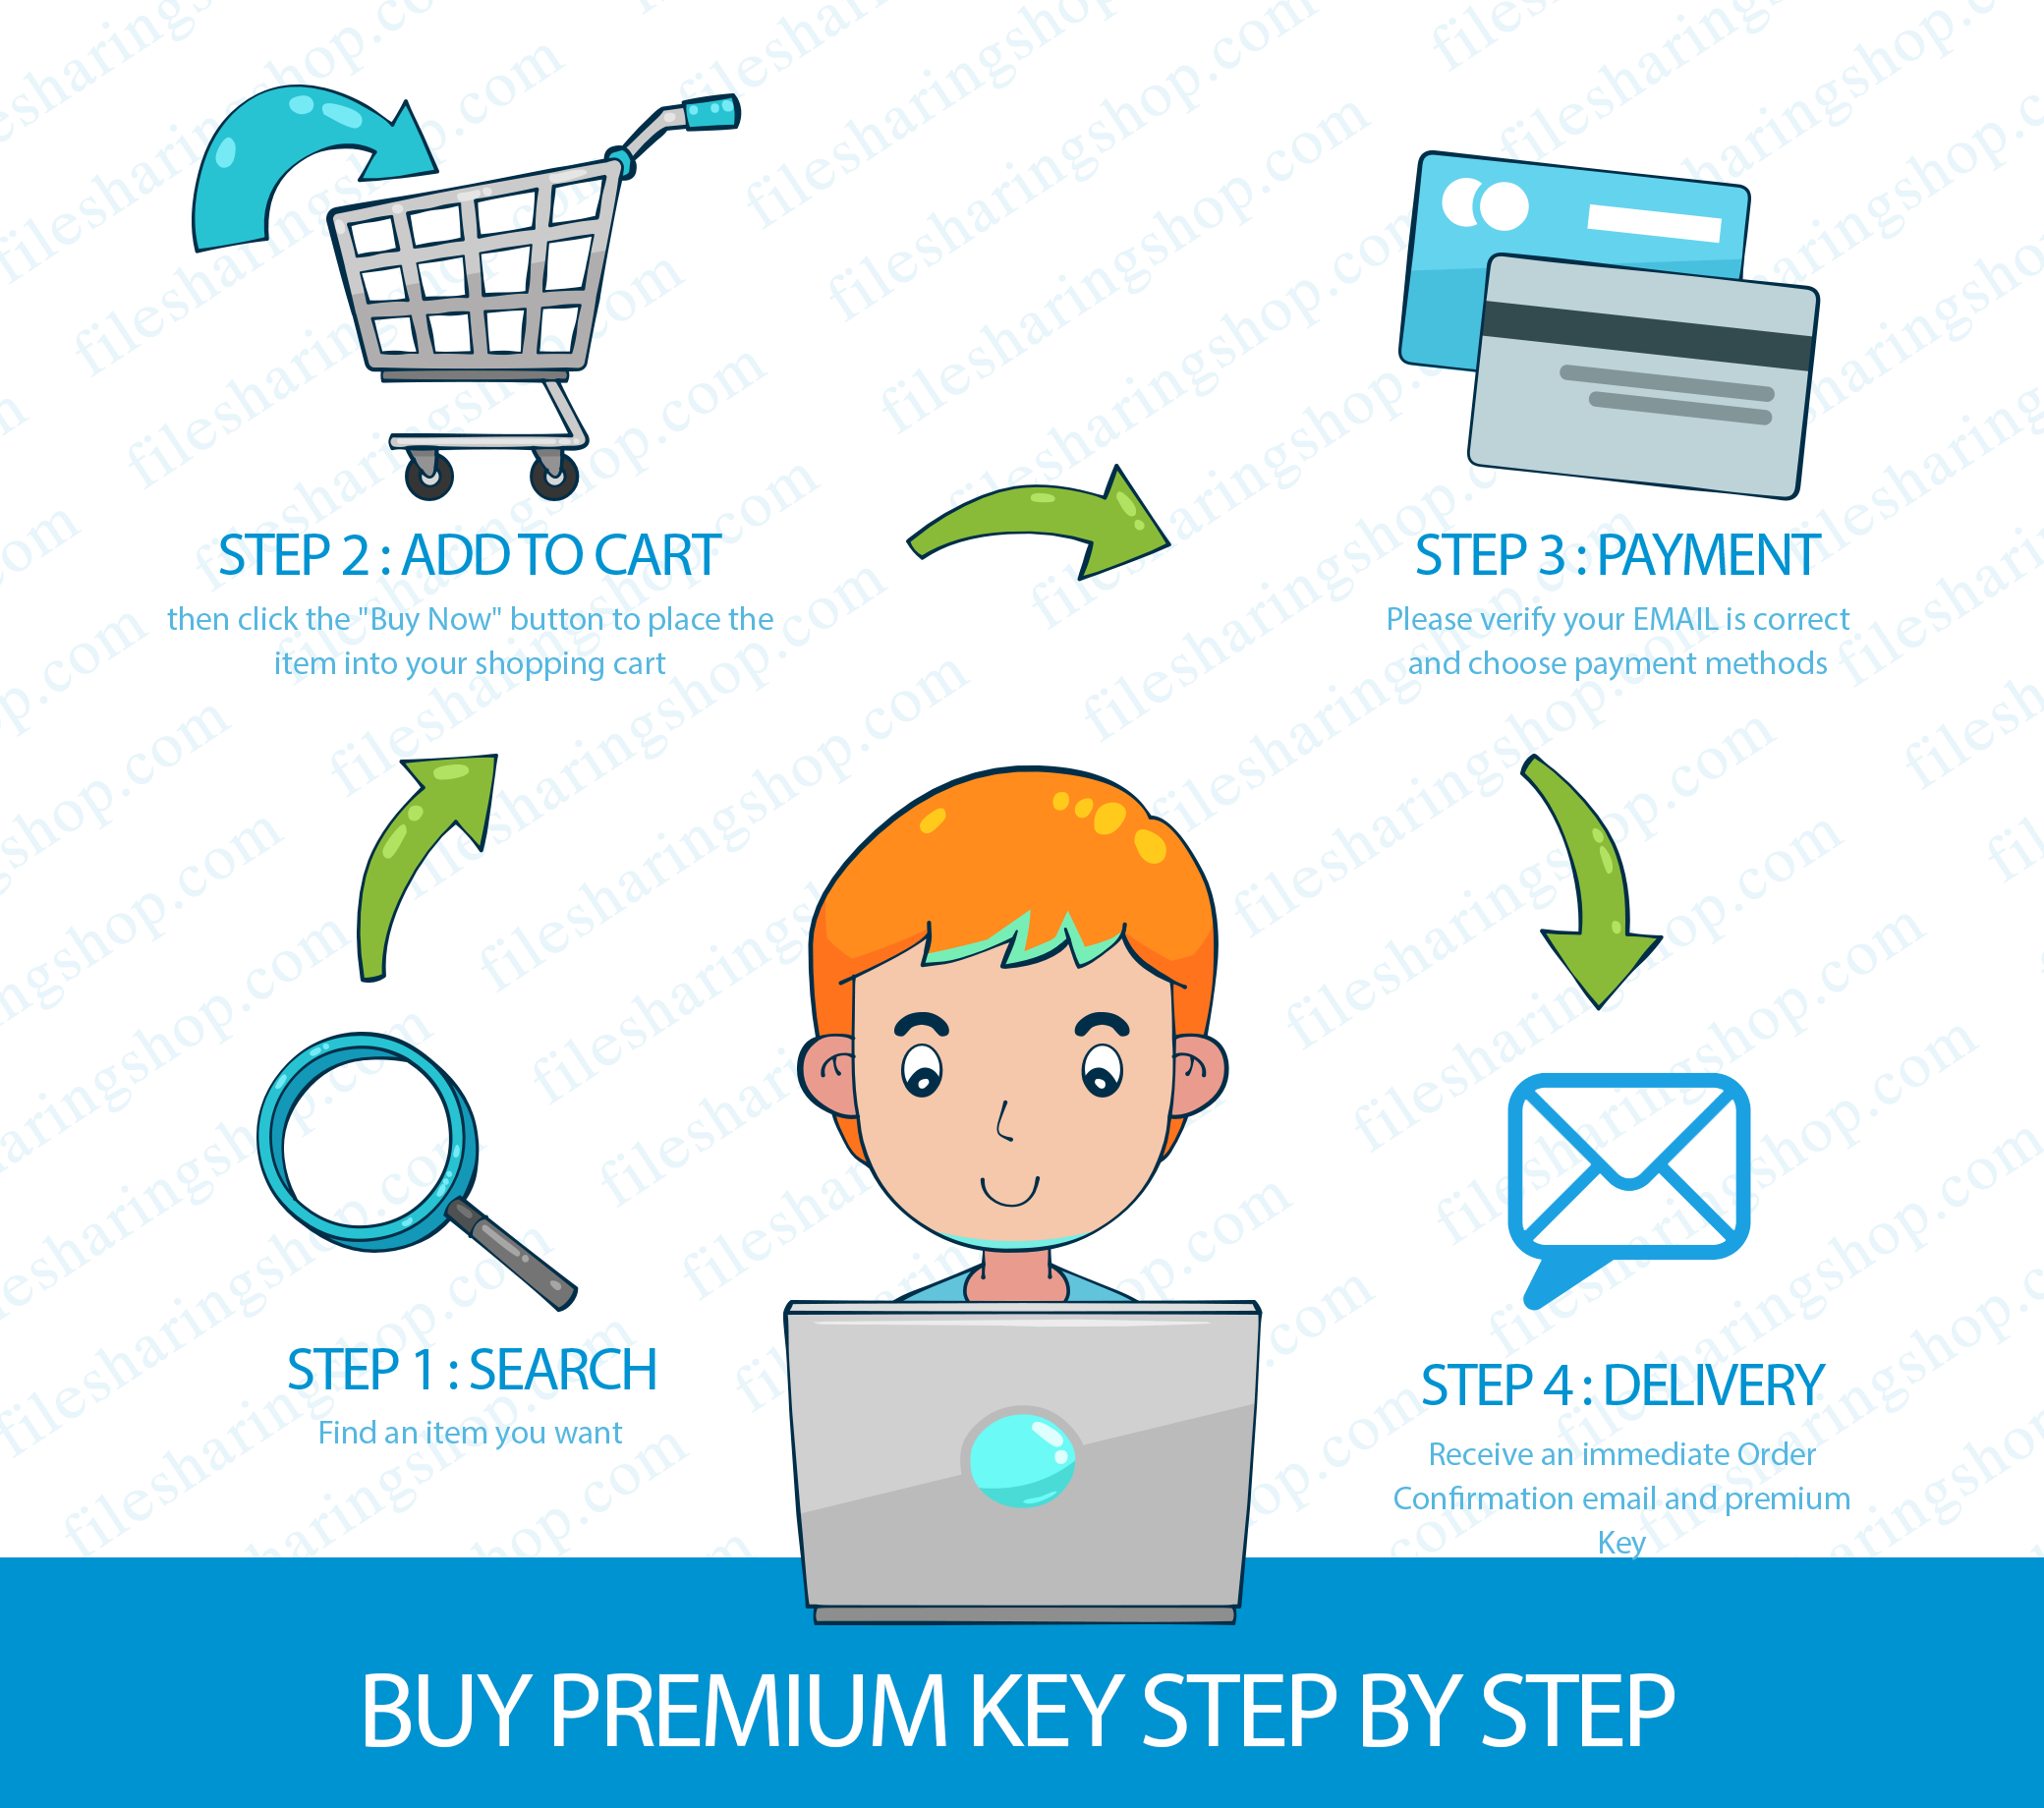 HOW TO BUY KATFILE PREMIUM